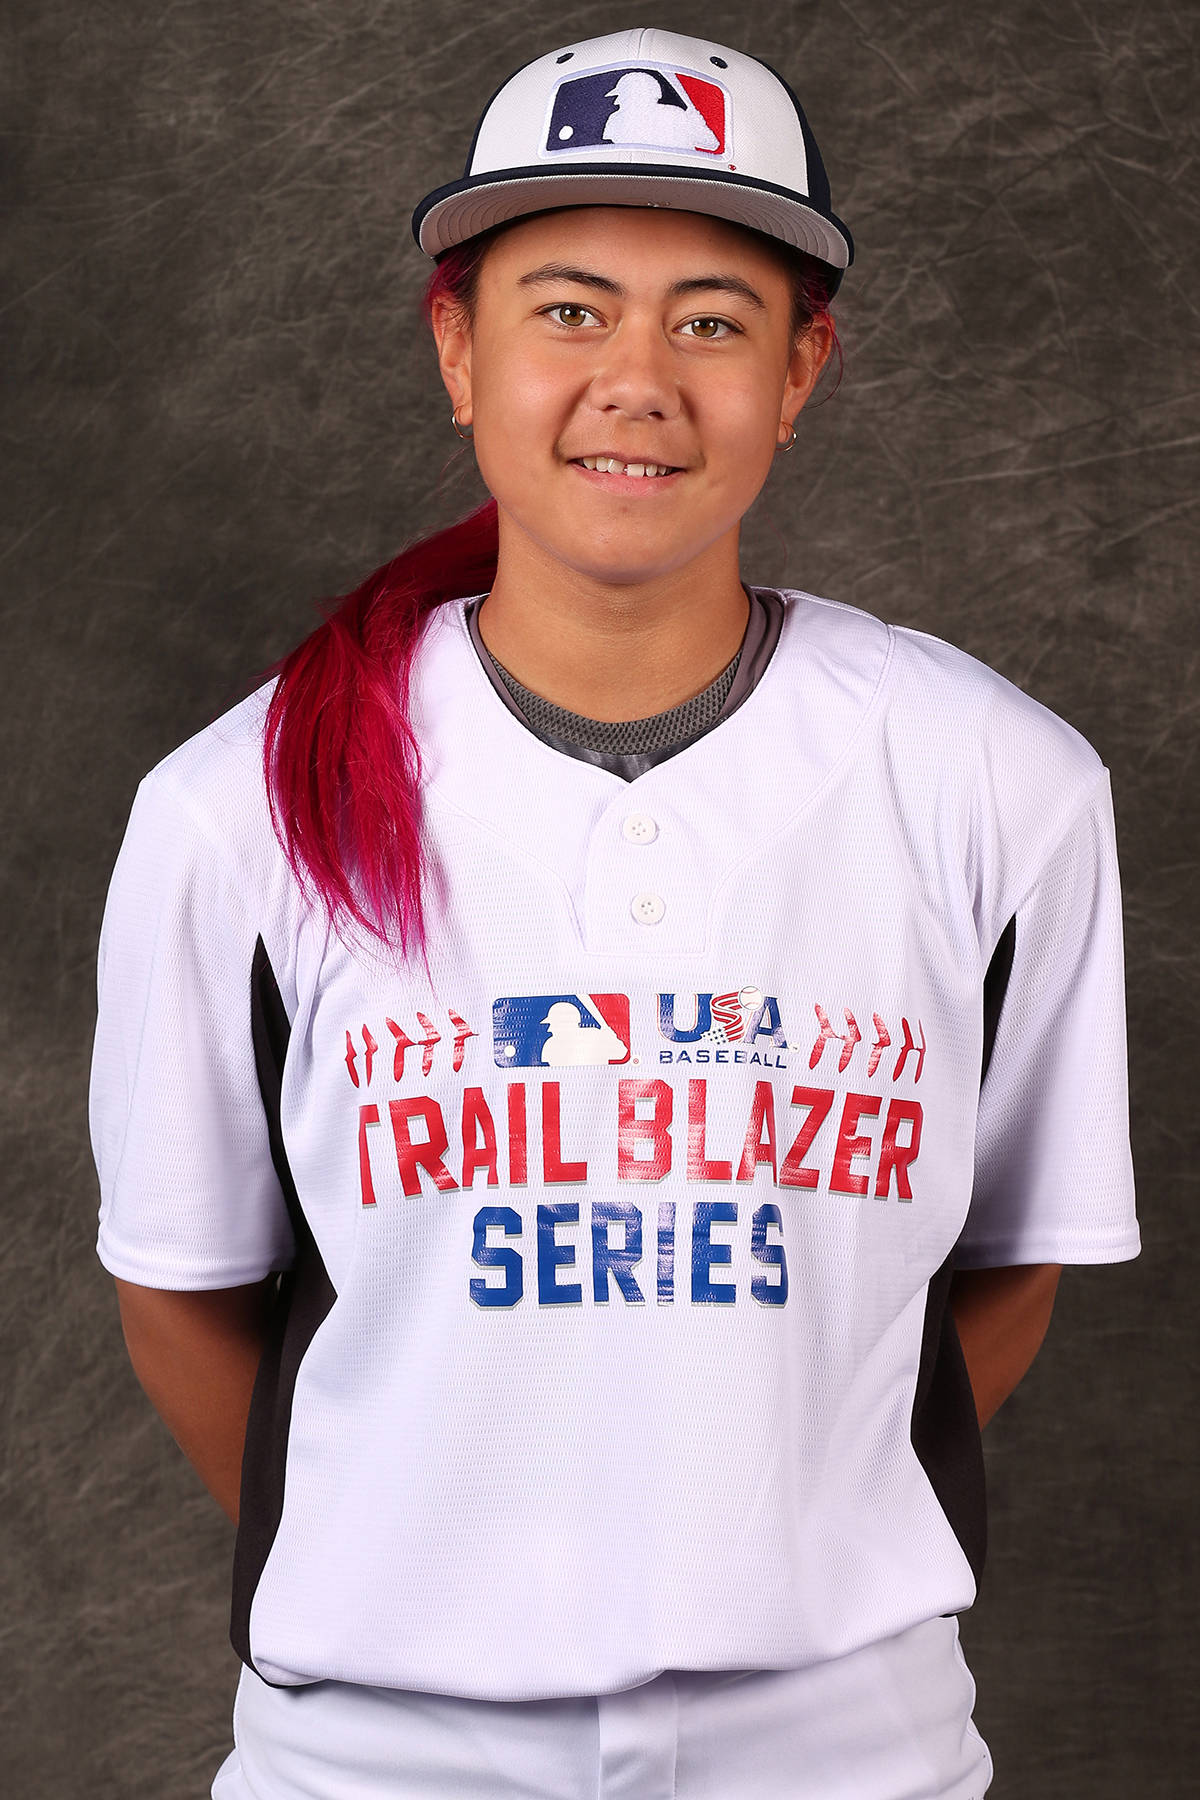 Abbotsford's Raine Padgham poses for a headshot during the Third Annual Girls Baseball Trailblazer Series at the Compton Youth Academy back in 2019. Padgham was recently named one of the most influential Canadians in the sport of baseball by the Canadian Baseball Network. (Rob Leiter/MLB Photos)